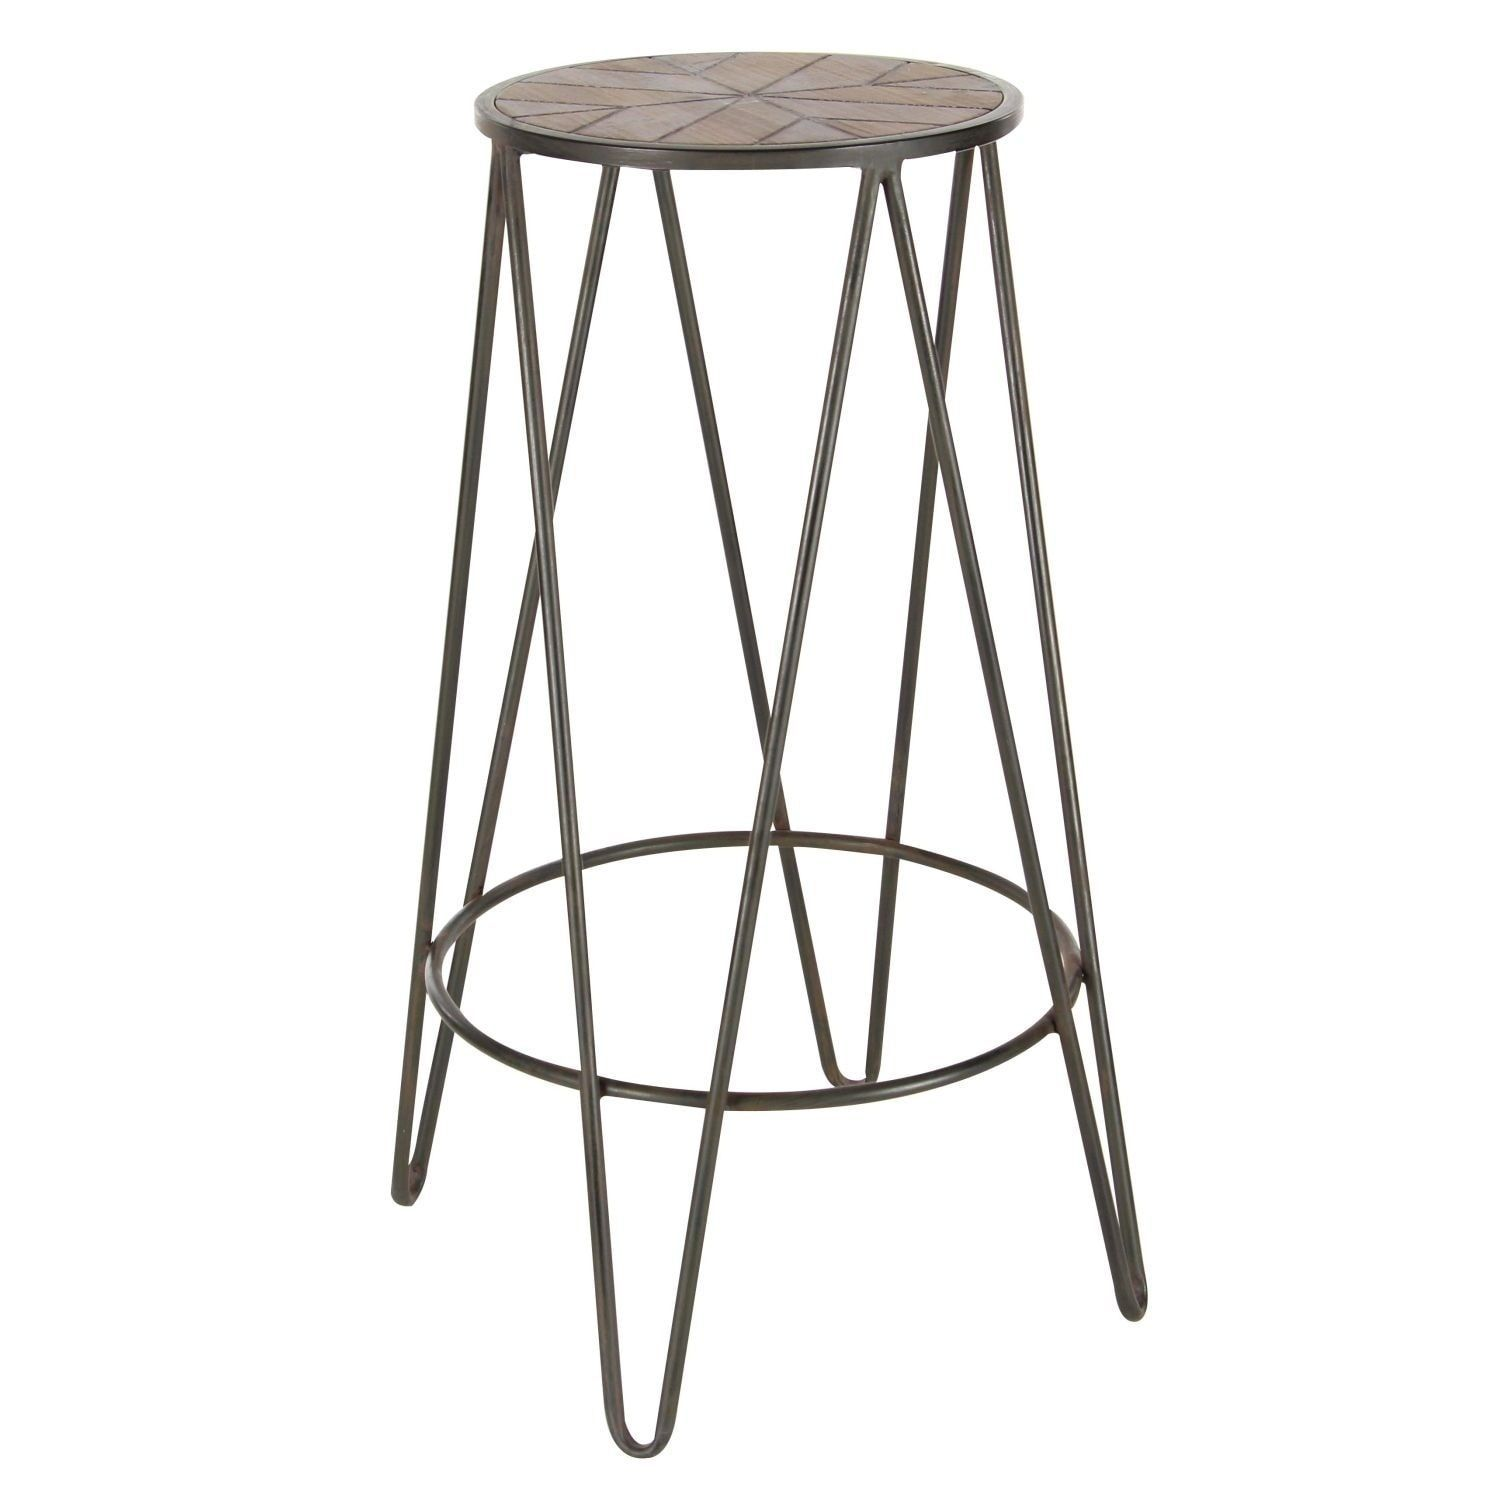 Studio 350 Metal Wood Stool 12 Inches Wide 30 Inches High Black